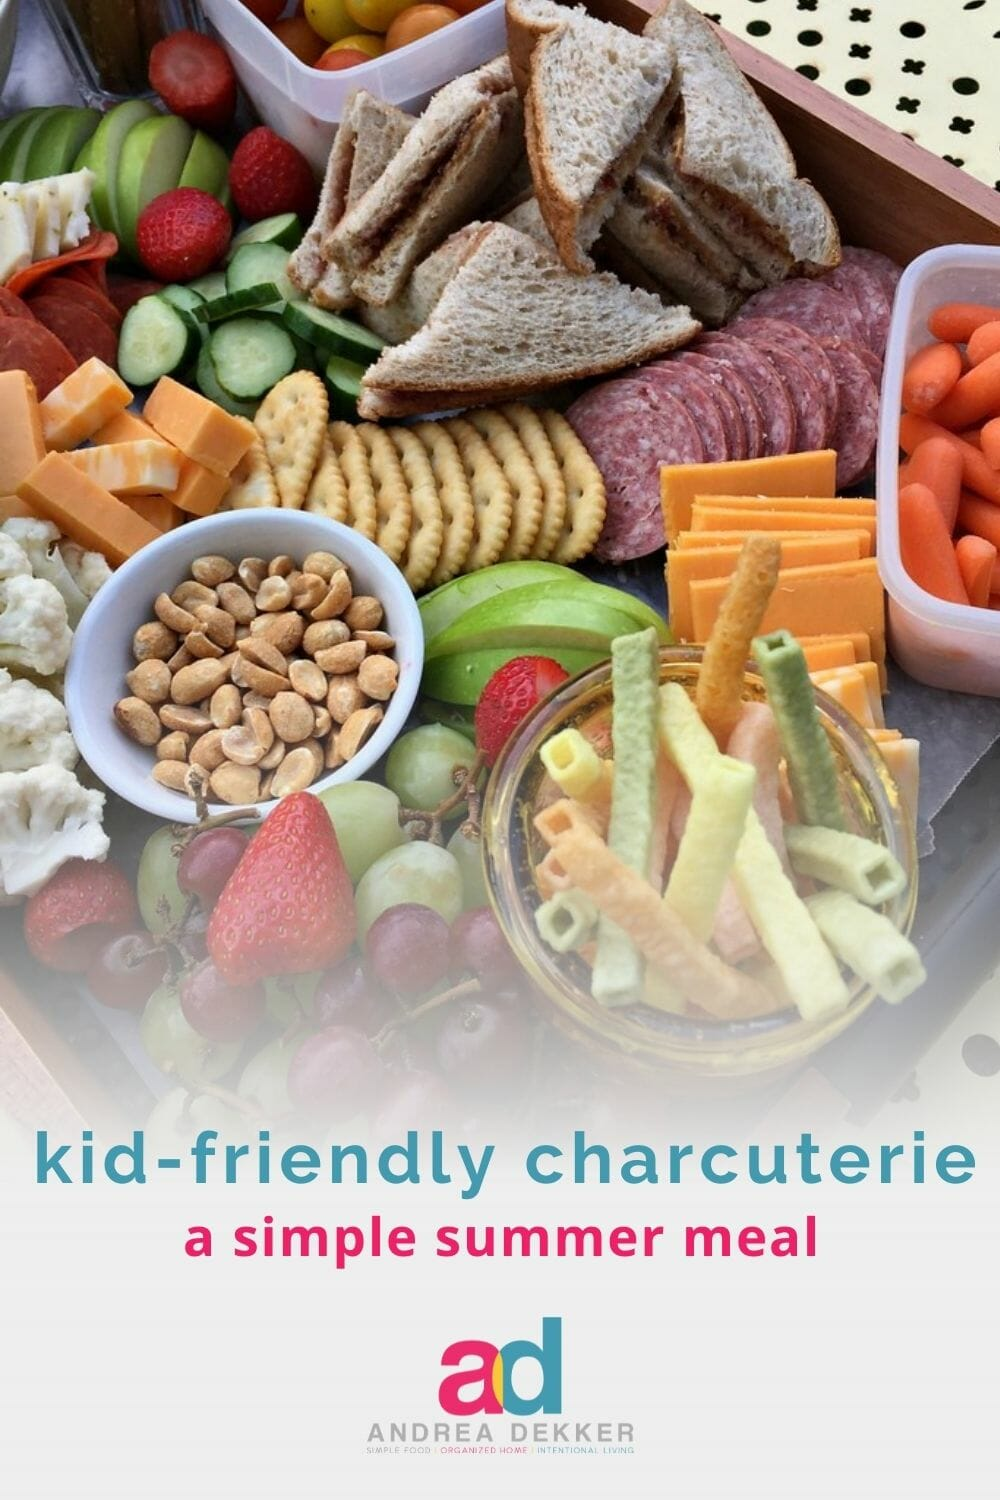 Whip up a simple kid-friendly charcuterie board and enjoy minimal cleanup and less time in the kitchen — perfect for relaxing summer days (or whenever you need a quick meal everyone will love). via @andreadekker